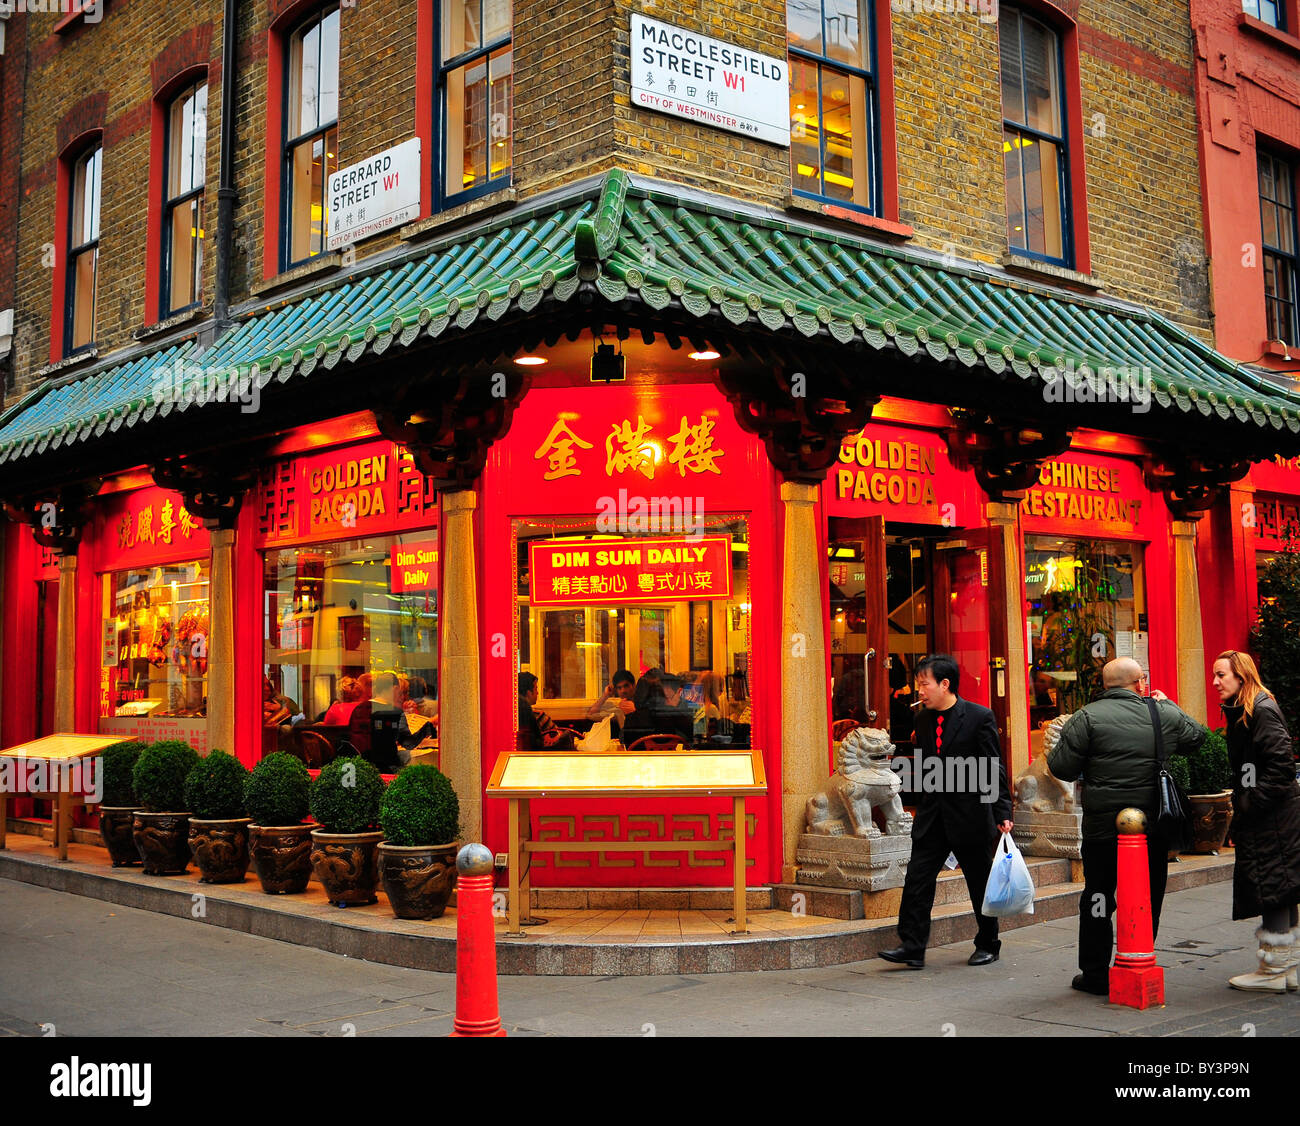 Golden Pagoda Restaurant in China Town, london - Stock Image